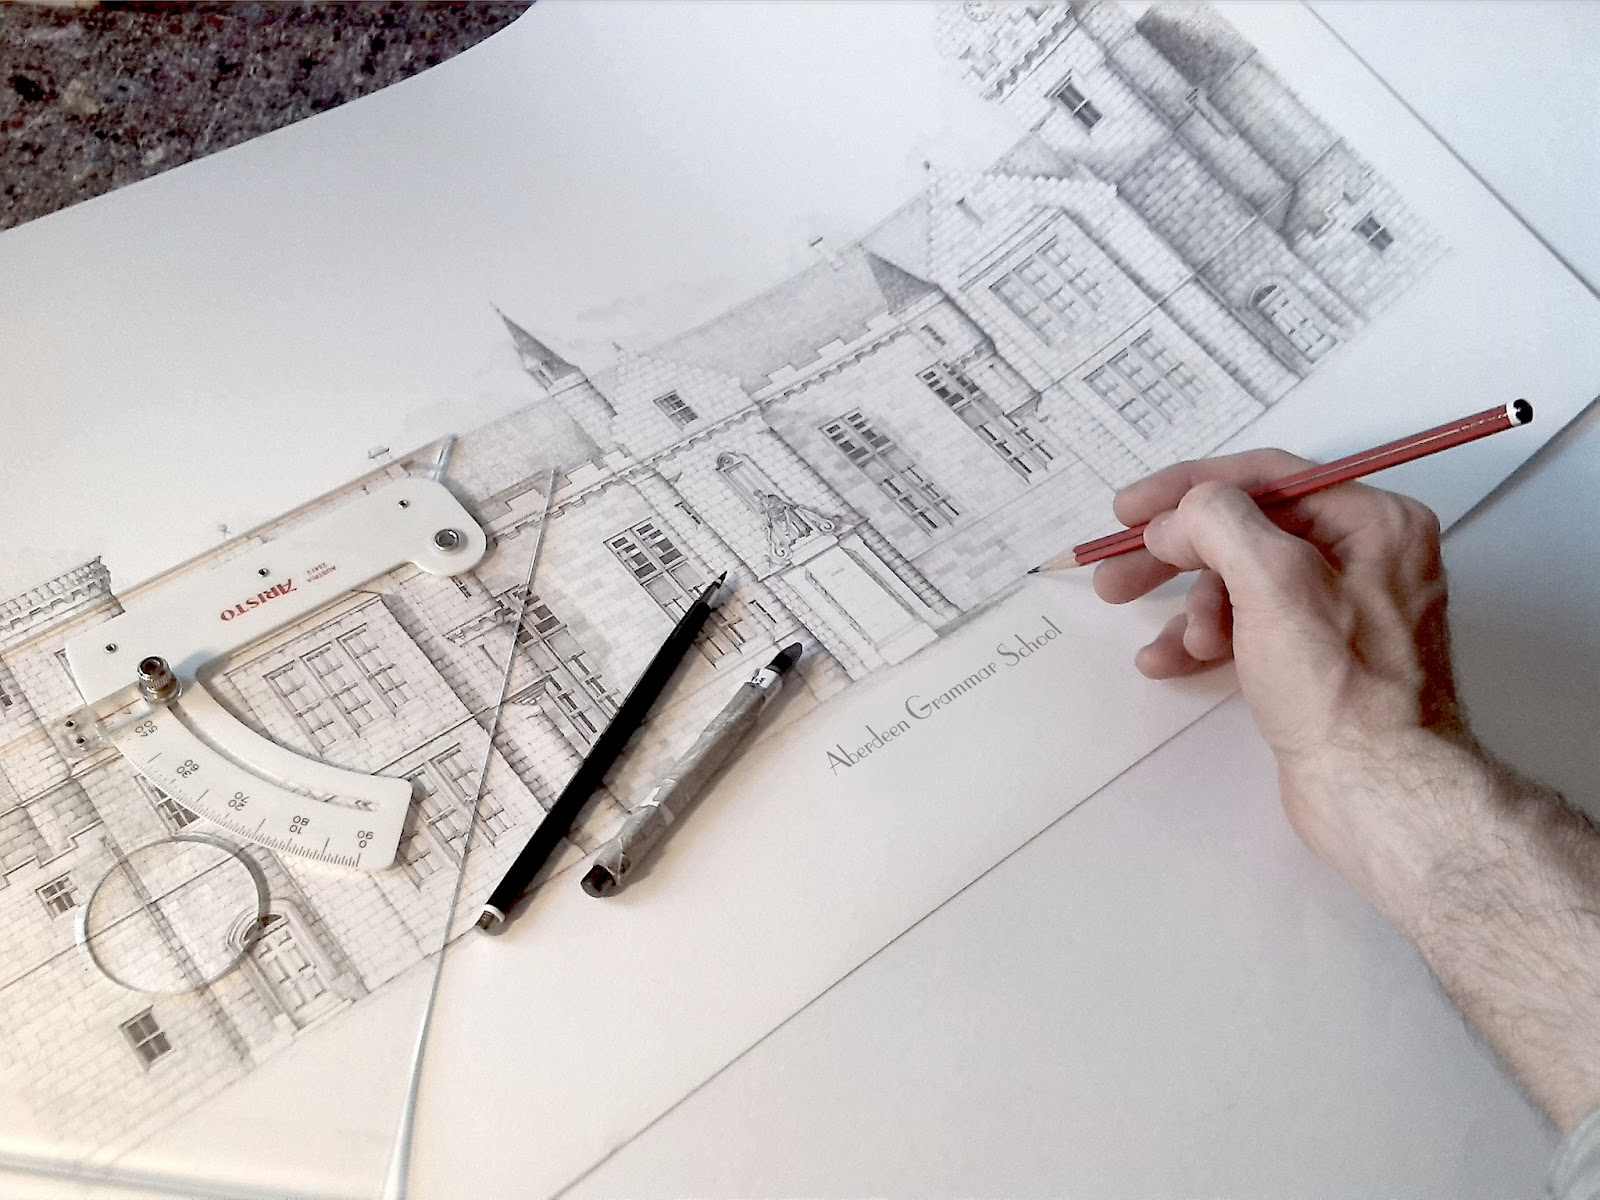 02-Aberdeen-s-The-Grammar-Jamie-Cameron-Intricate-Architectural-Drawings-and-Illustrations-www-designstack-co